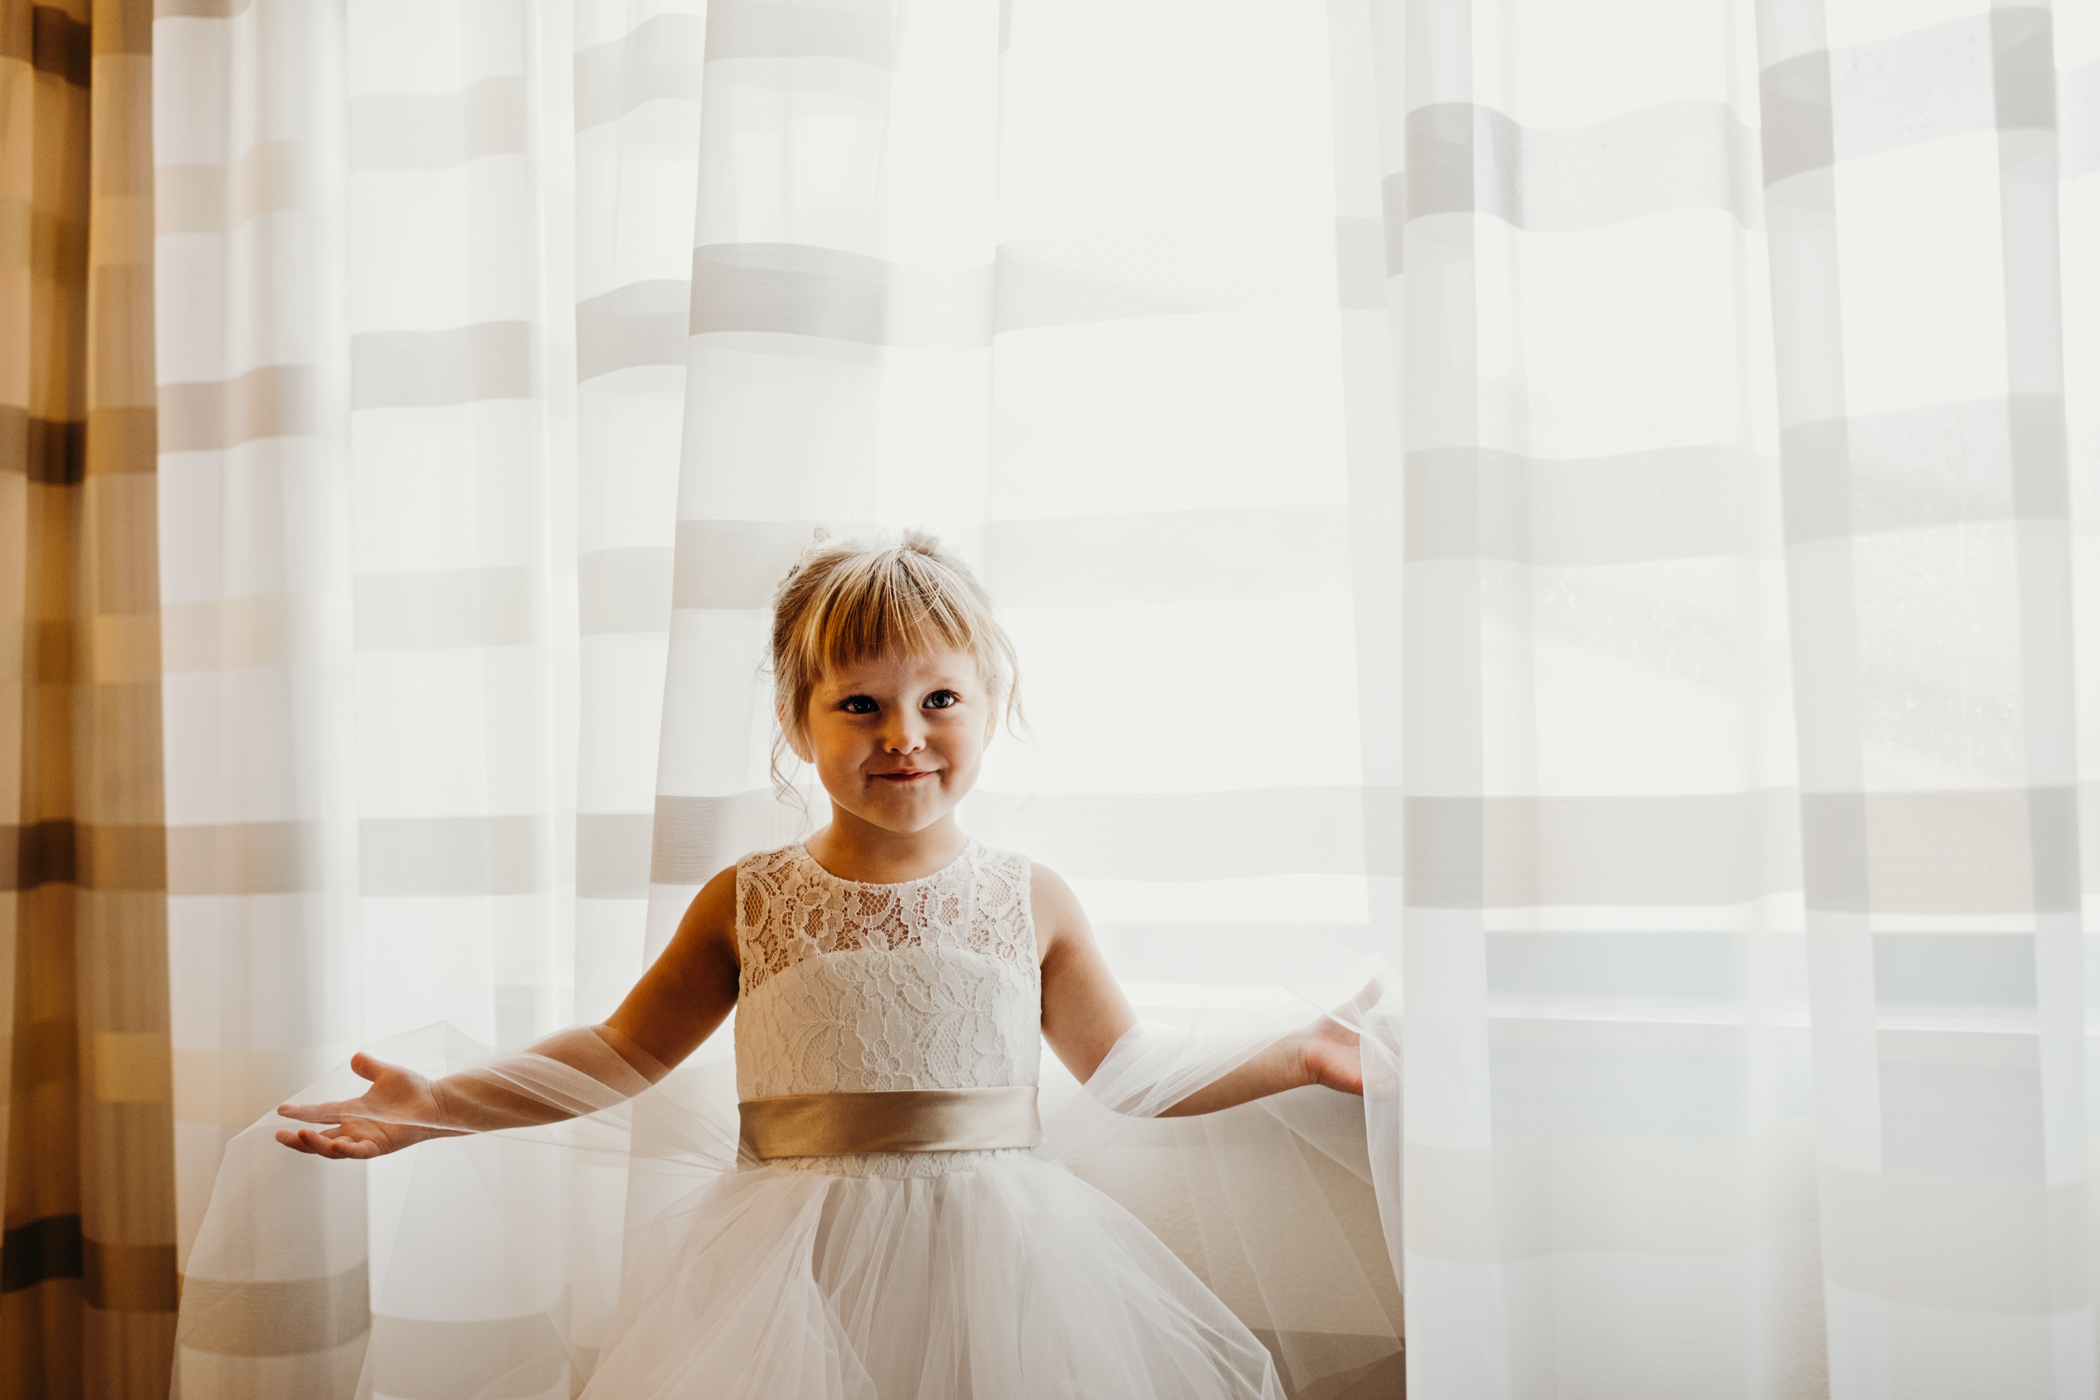 Flower girl plays with hotel room curtains